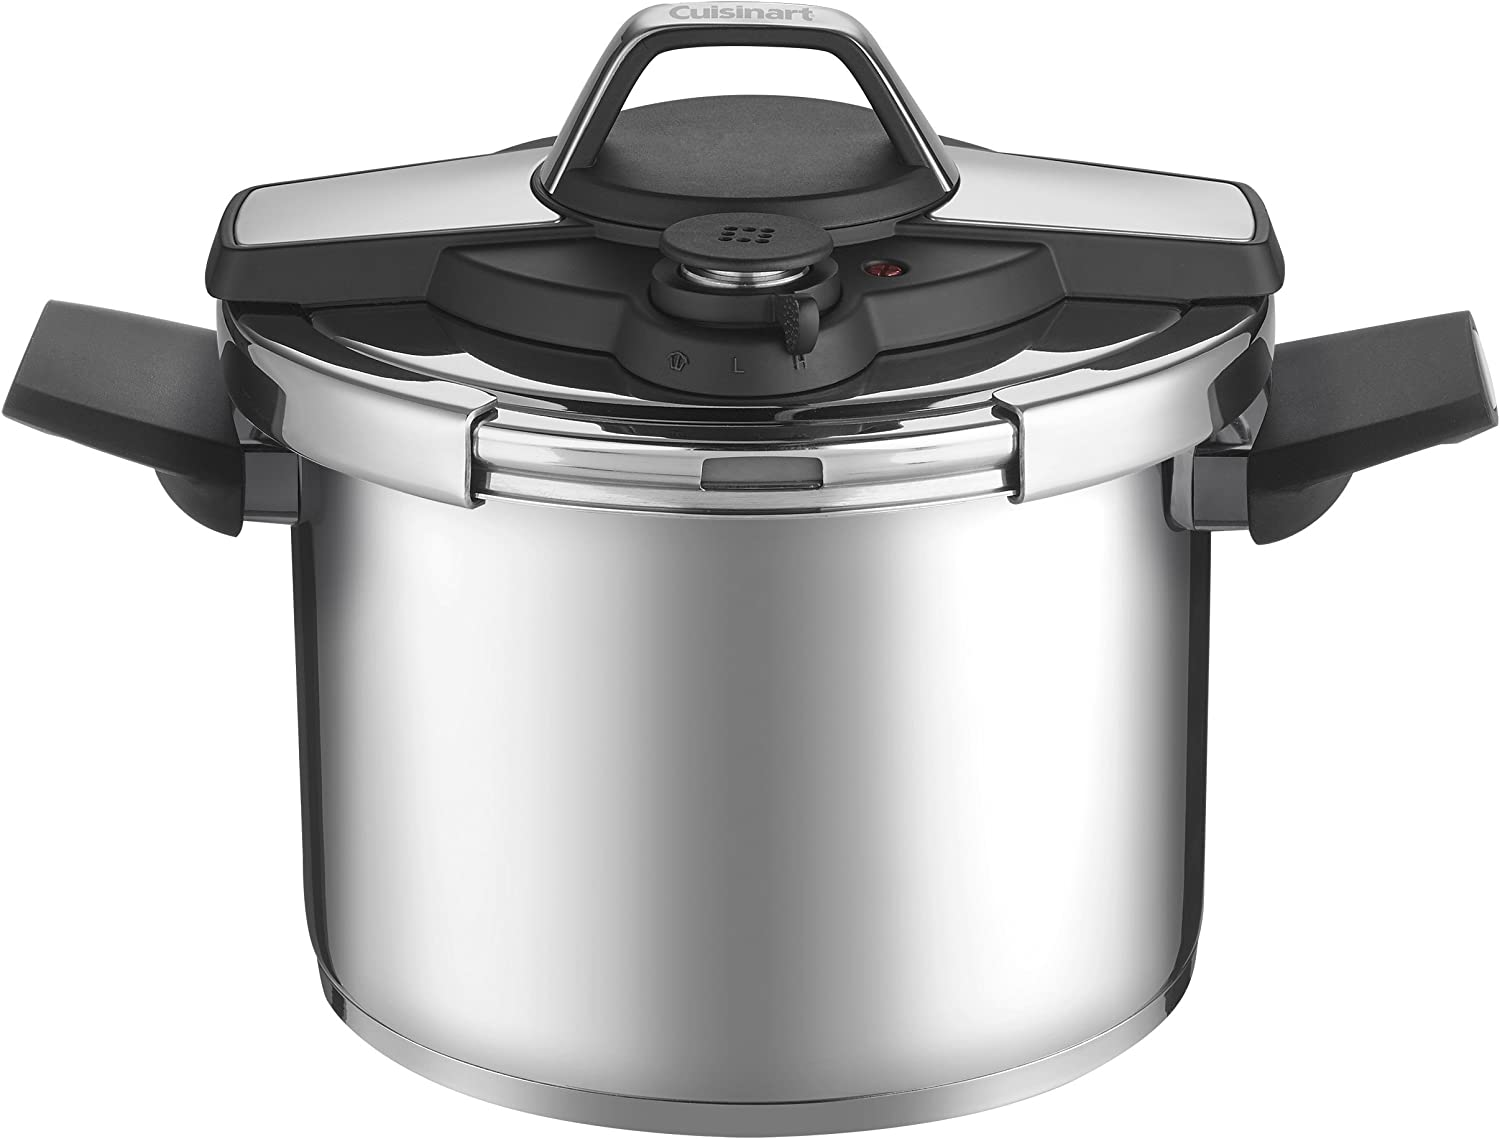 Cuisinart Professional Collection Stainless Pressure cooker, Medium, Silver